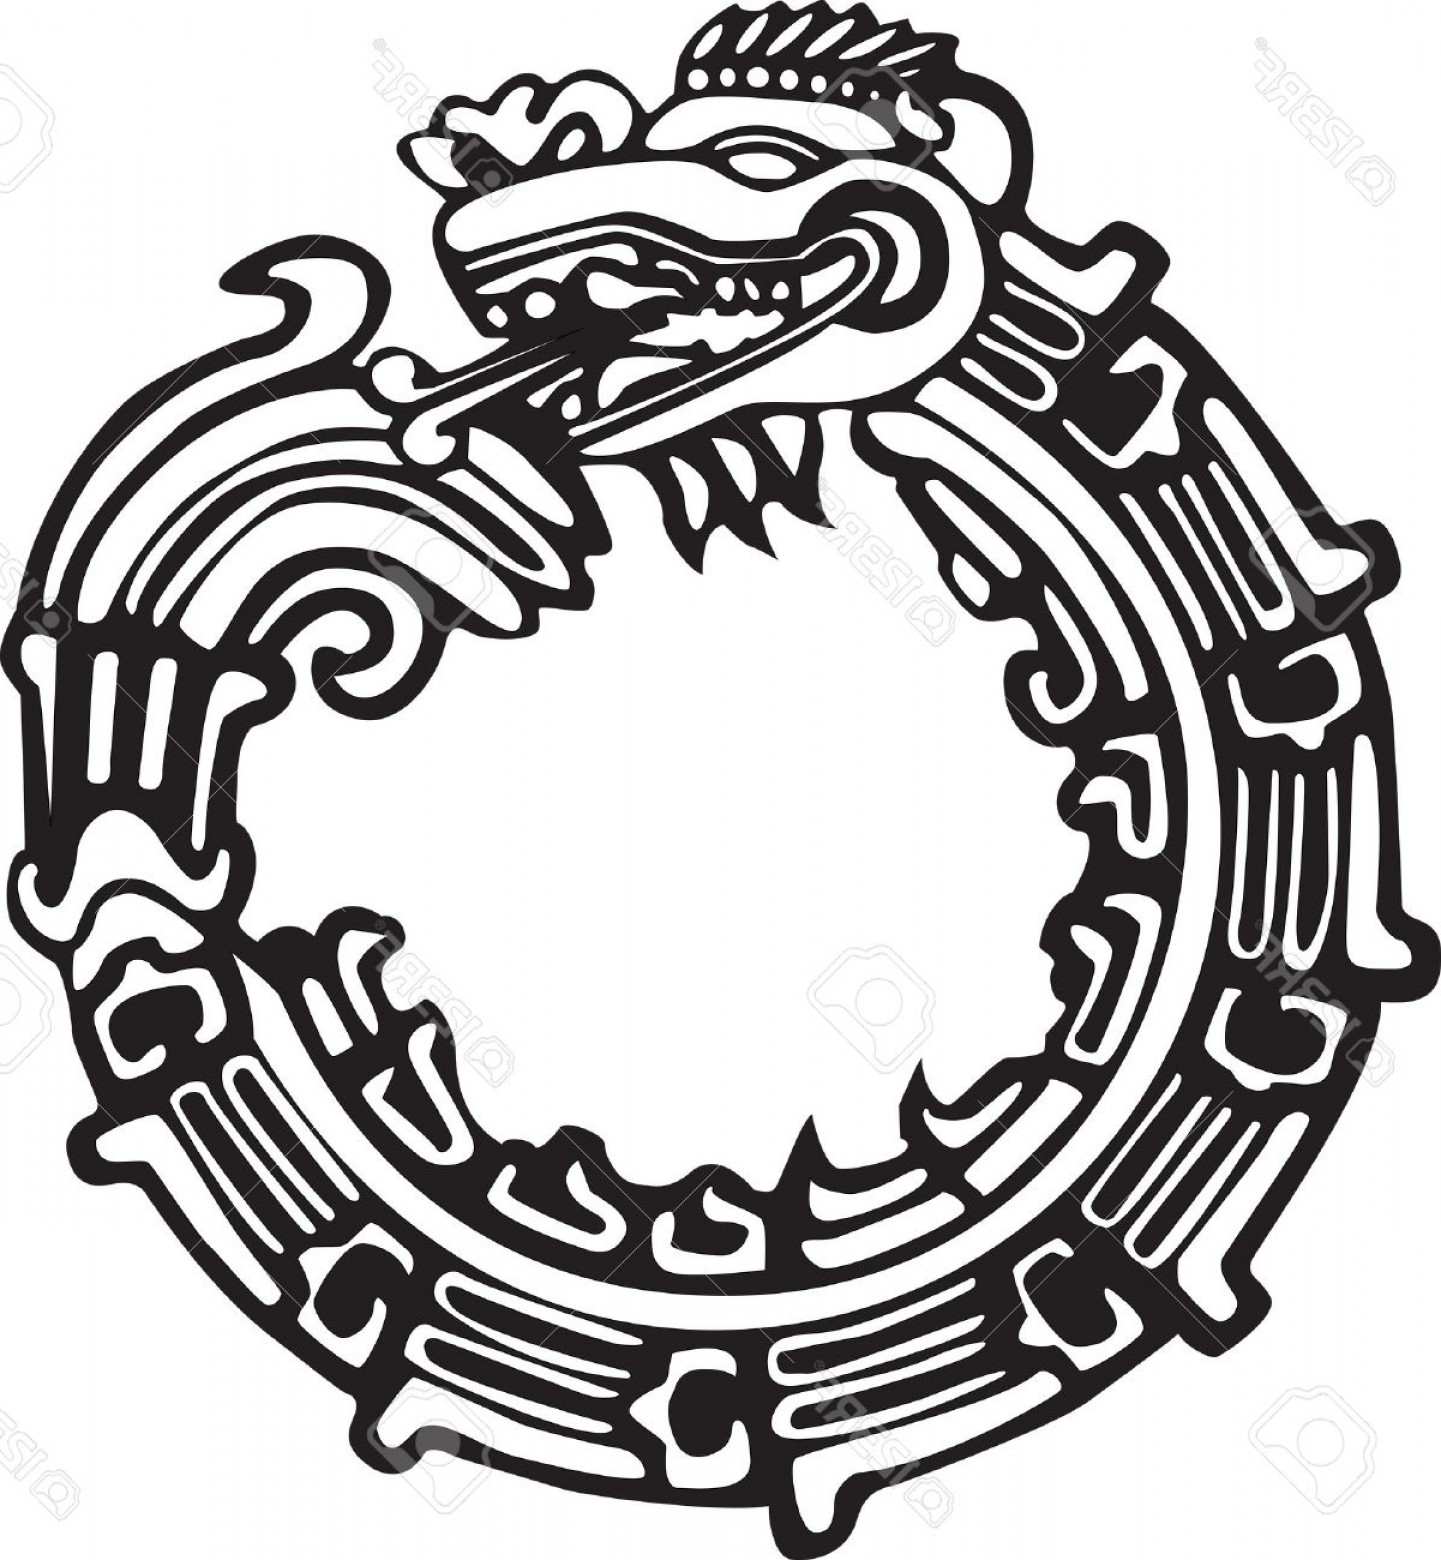 Mayan Vector: Photoaztec Maya Or Chinese Dragon Vector Great For Tattoo Can Be Fully Personalized And Colored